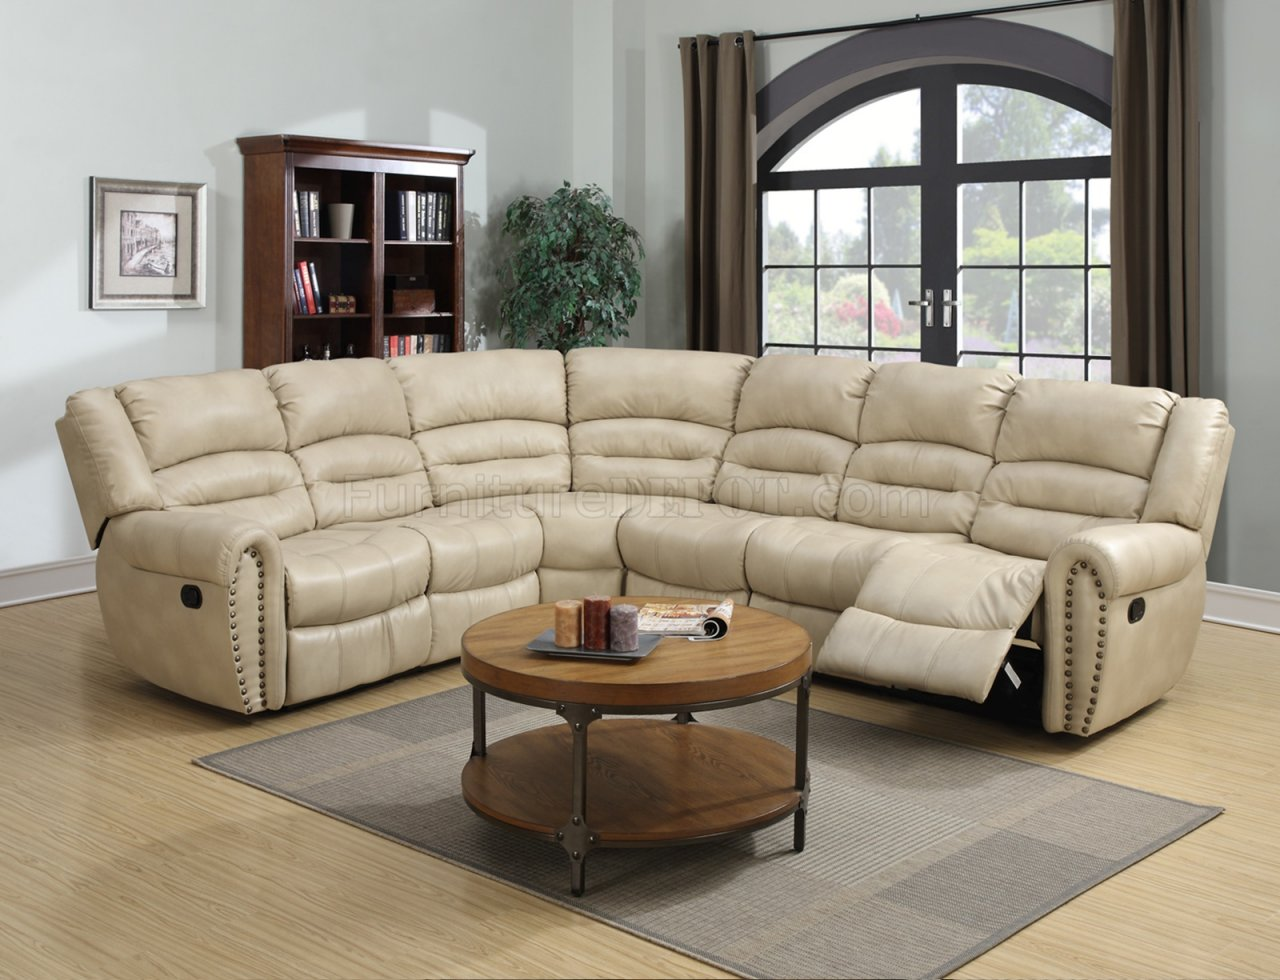 G687 Motion Sectional Sofa in Beige Bonded Leather by Glory